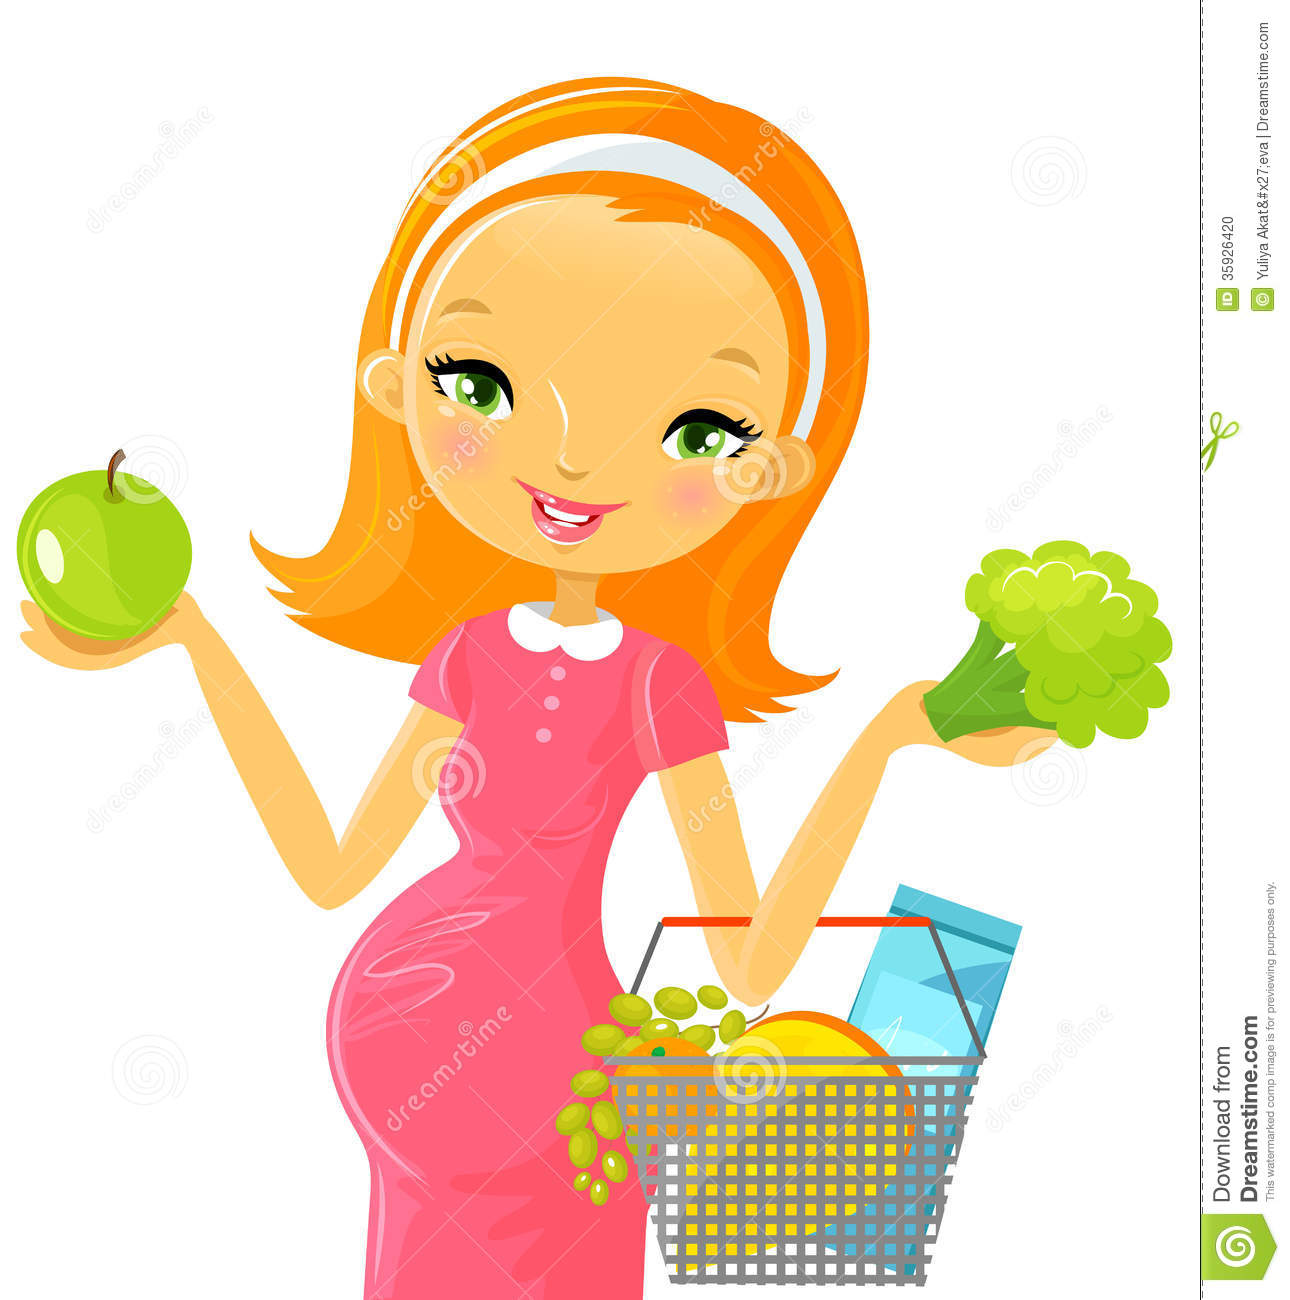 Happy Mothers (to-be) Day: Nutrition tips for a healthy pregnancy